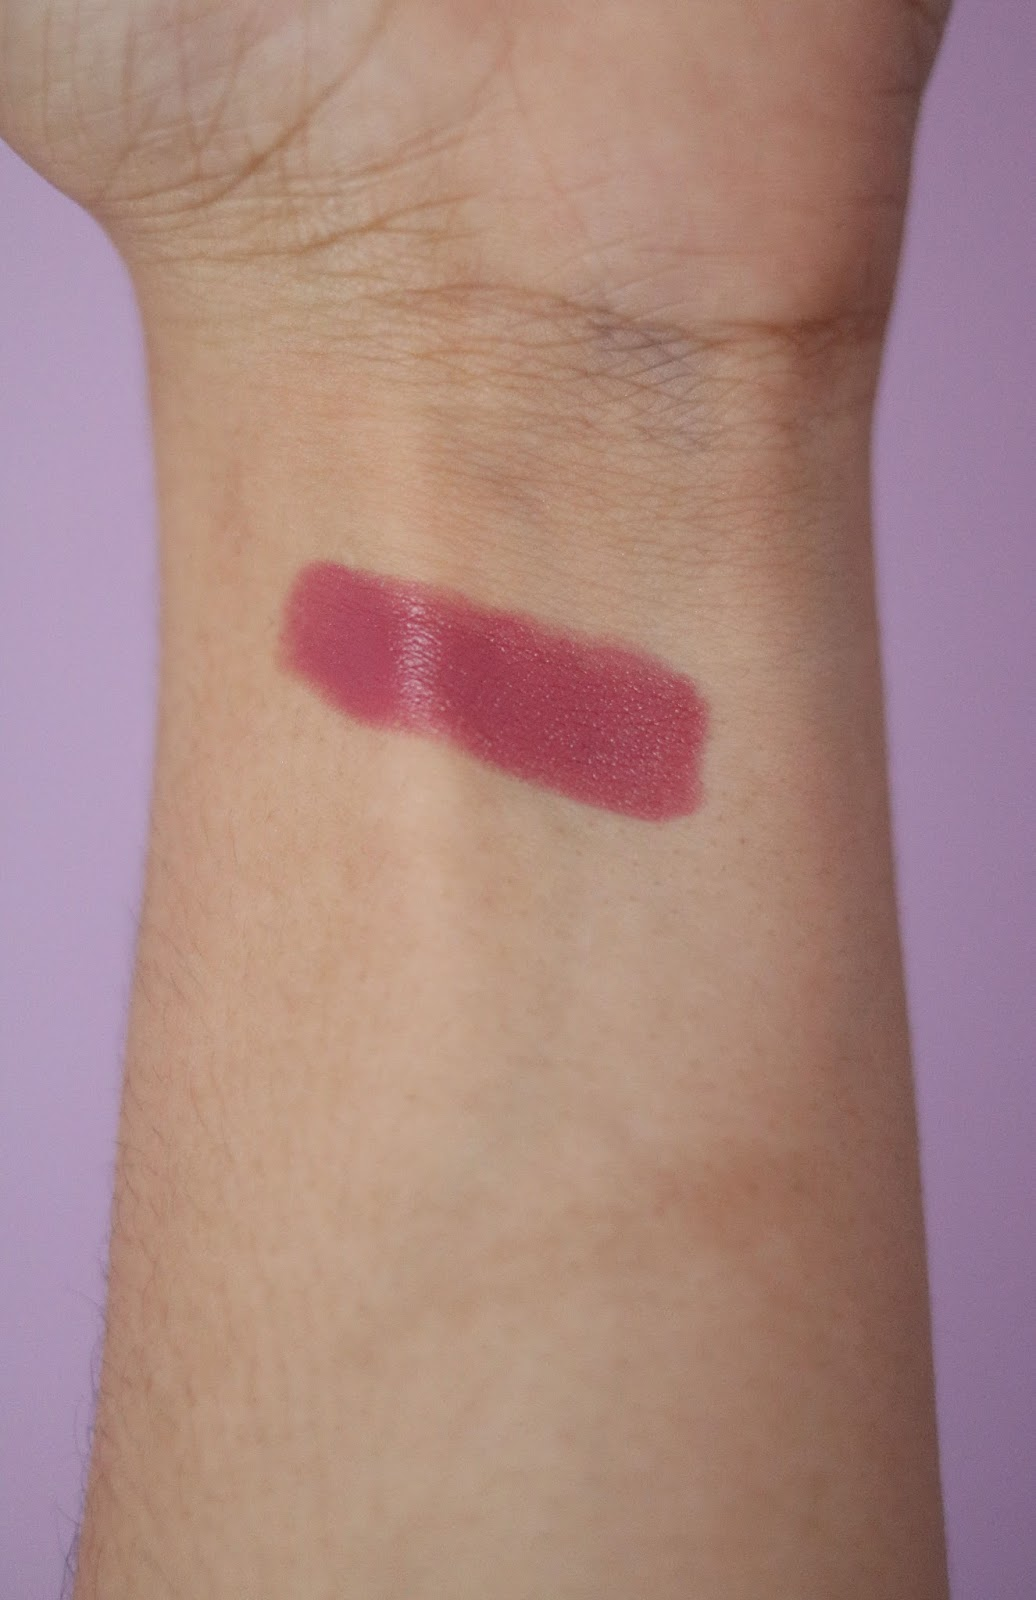 PLUM POP , Clinique POP rouge intense ,rosemademoiselle , Rose Mademoiselle , CLINIQUE  , octoly , avis , swatch , blog beauté , Paris , test